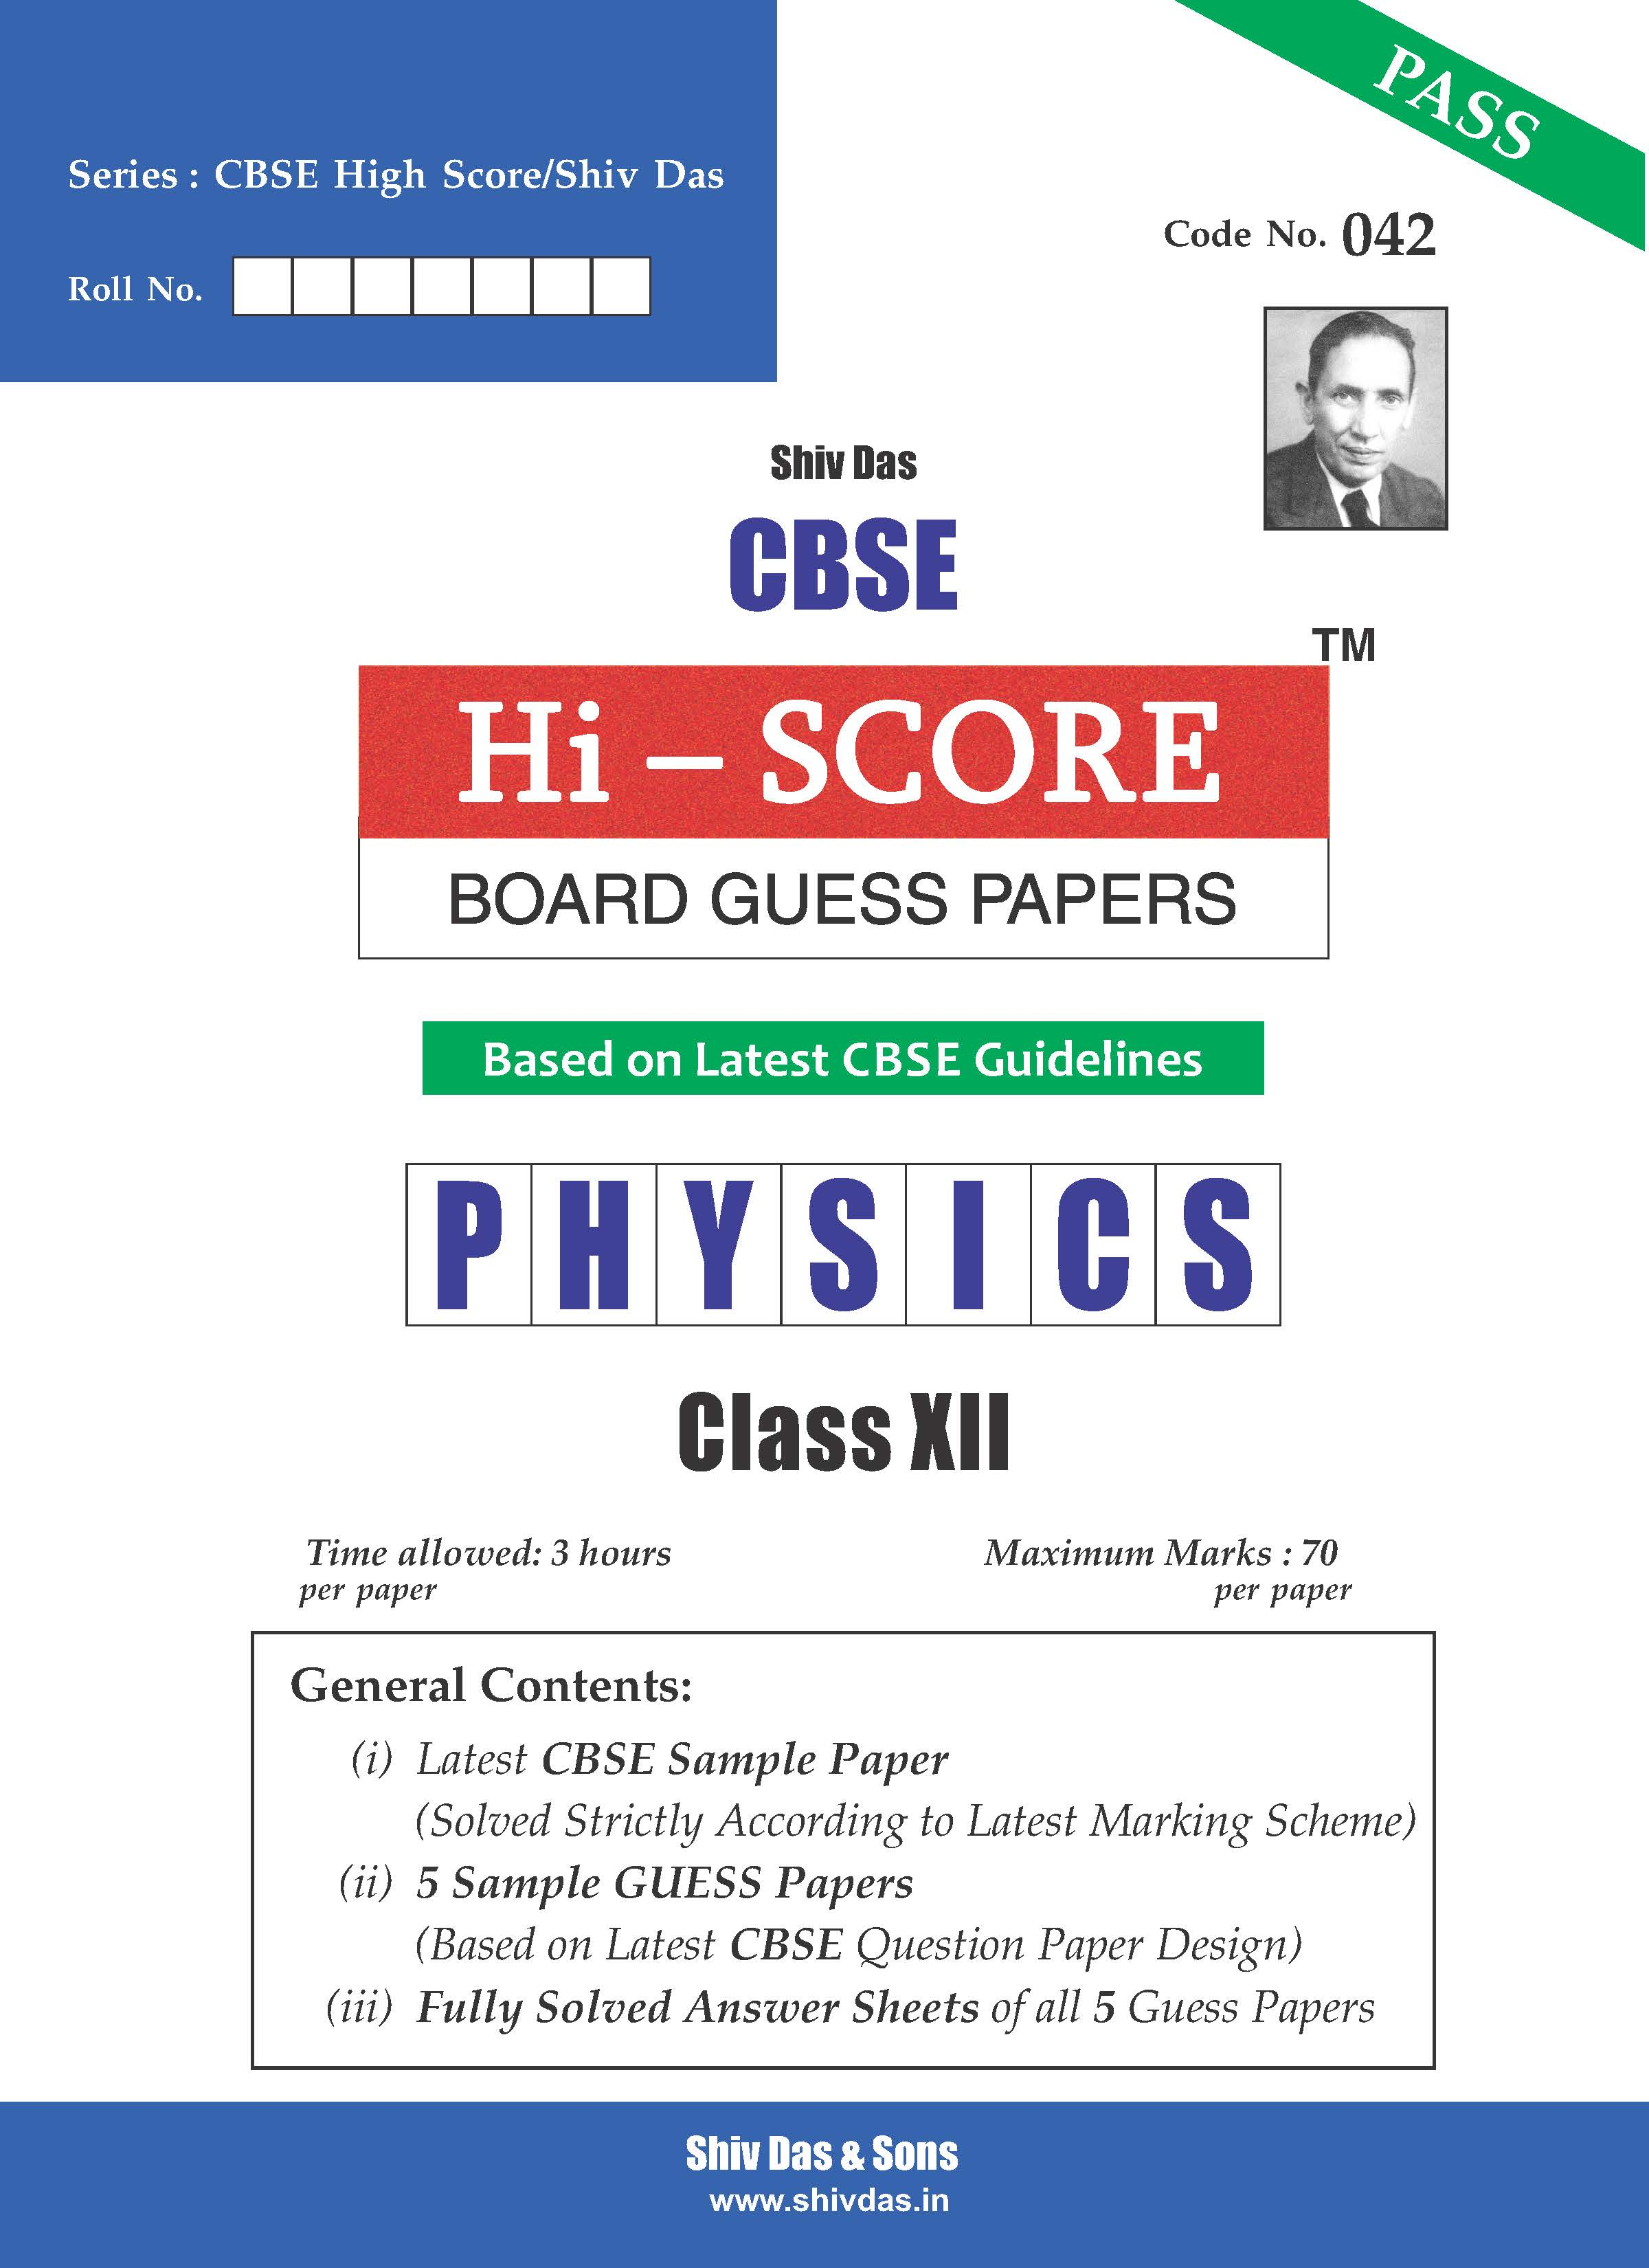 CBSE Hi Score Board Guess Papers for Class 12 Physics